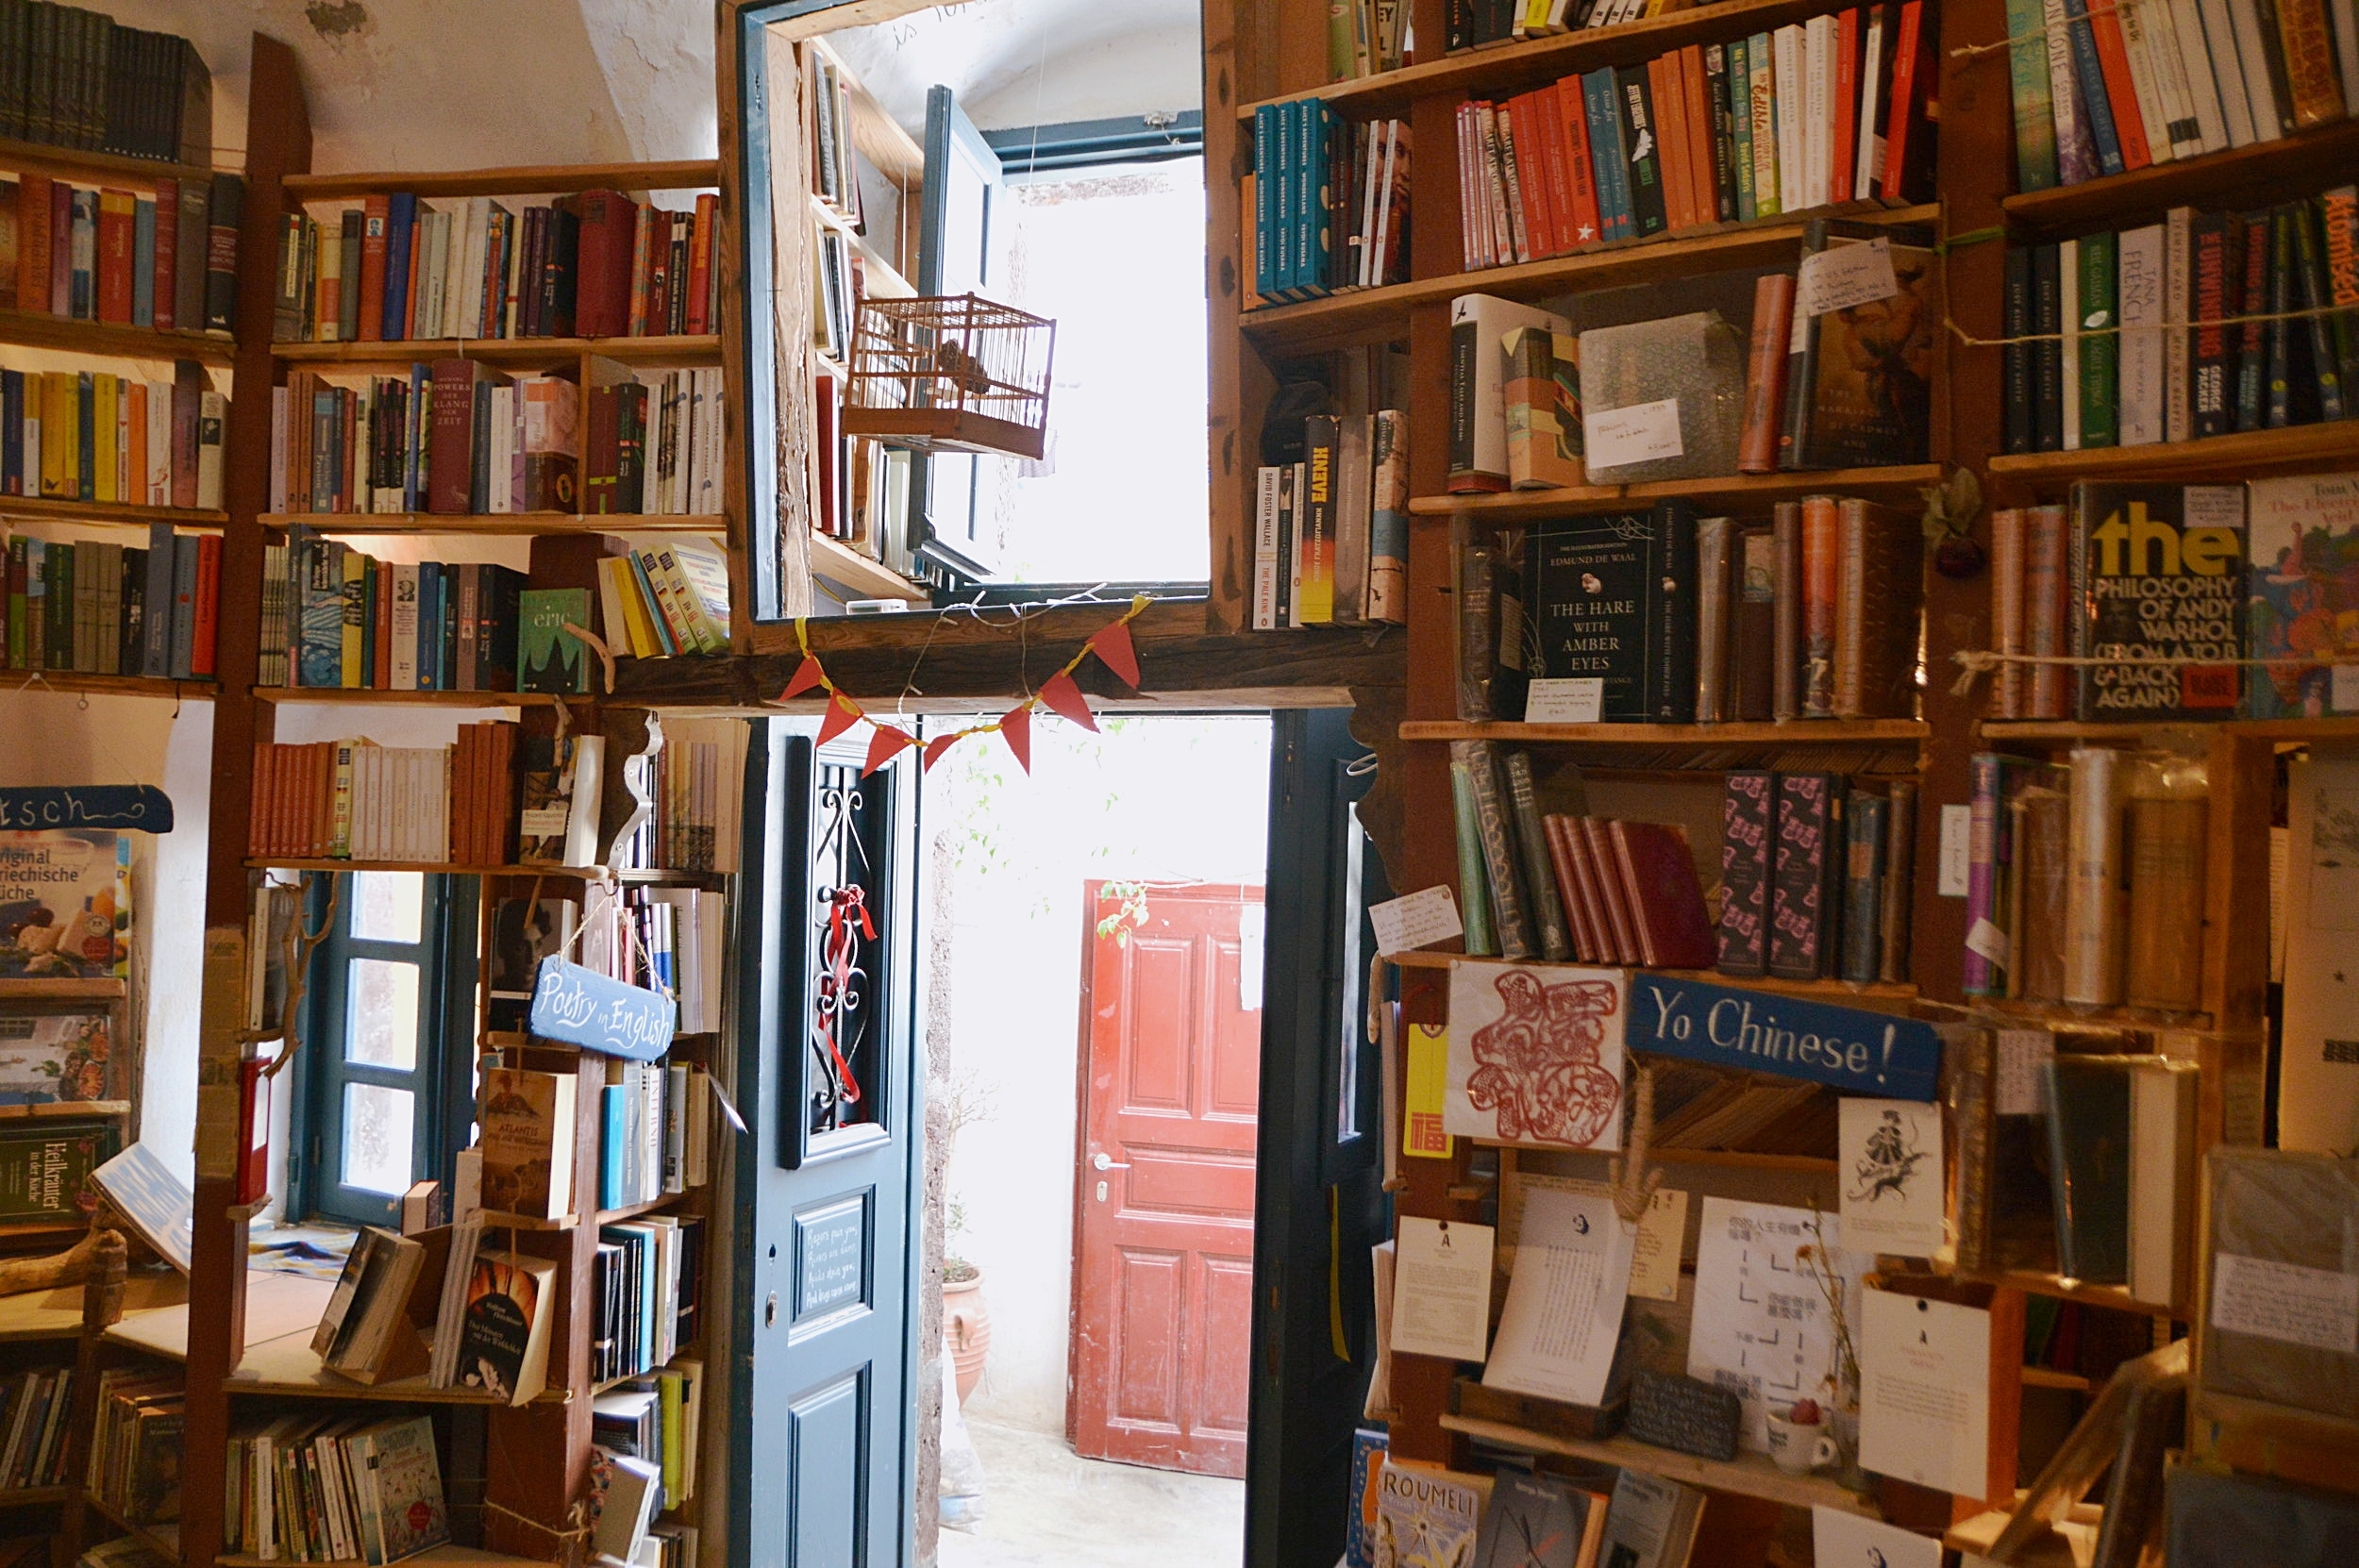 This Santorini Bookshop, Atlantis Books, has just the right amount of chaos.